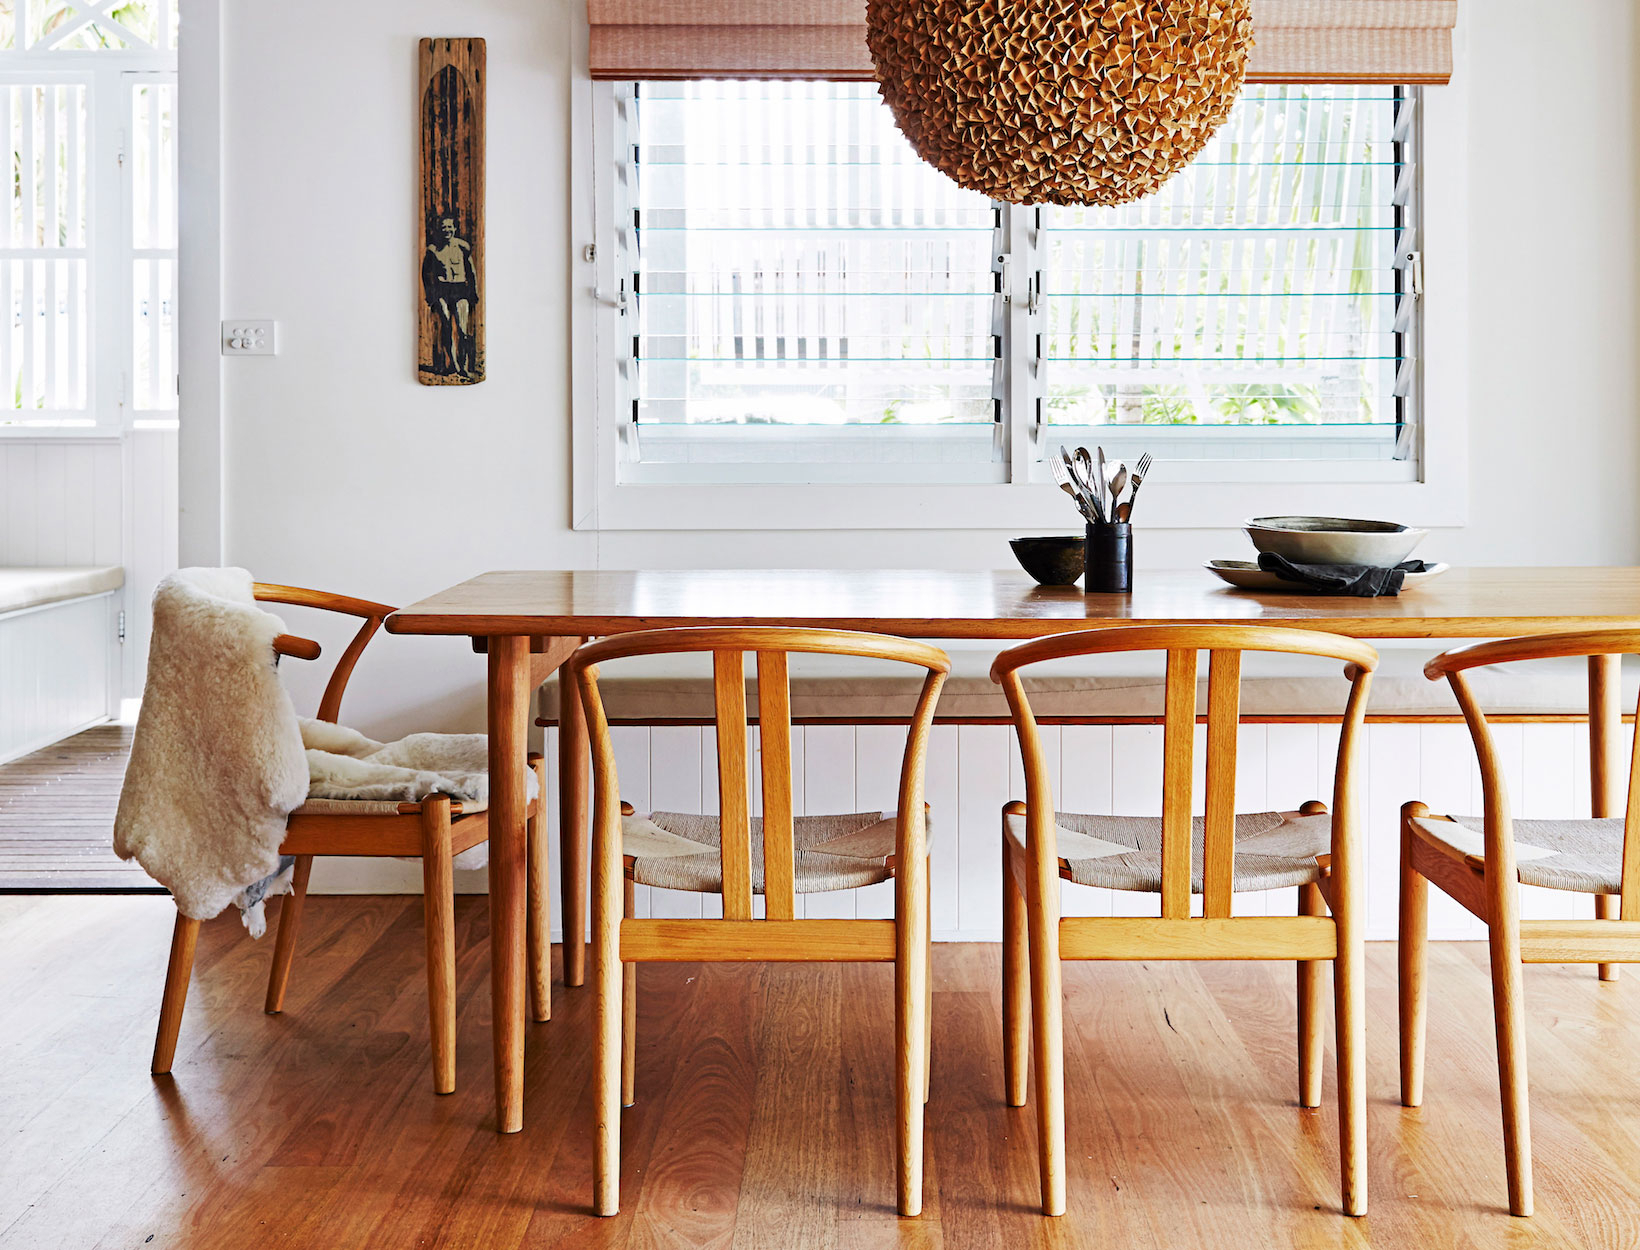 8 Design Professionals On Their Favorite Dining Tables | Goop Inside Recent West Hill Family Table 3 Piece Dining Sets (View 9 of 20)